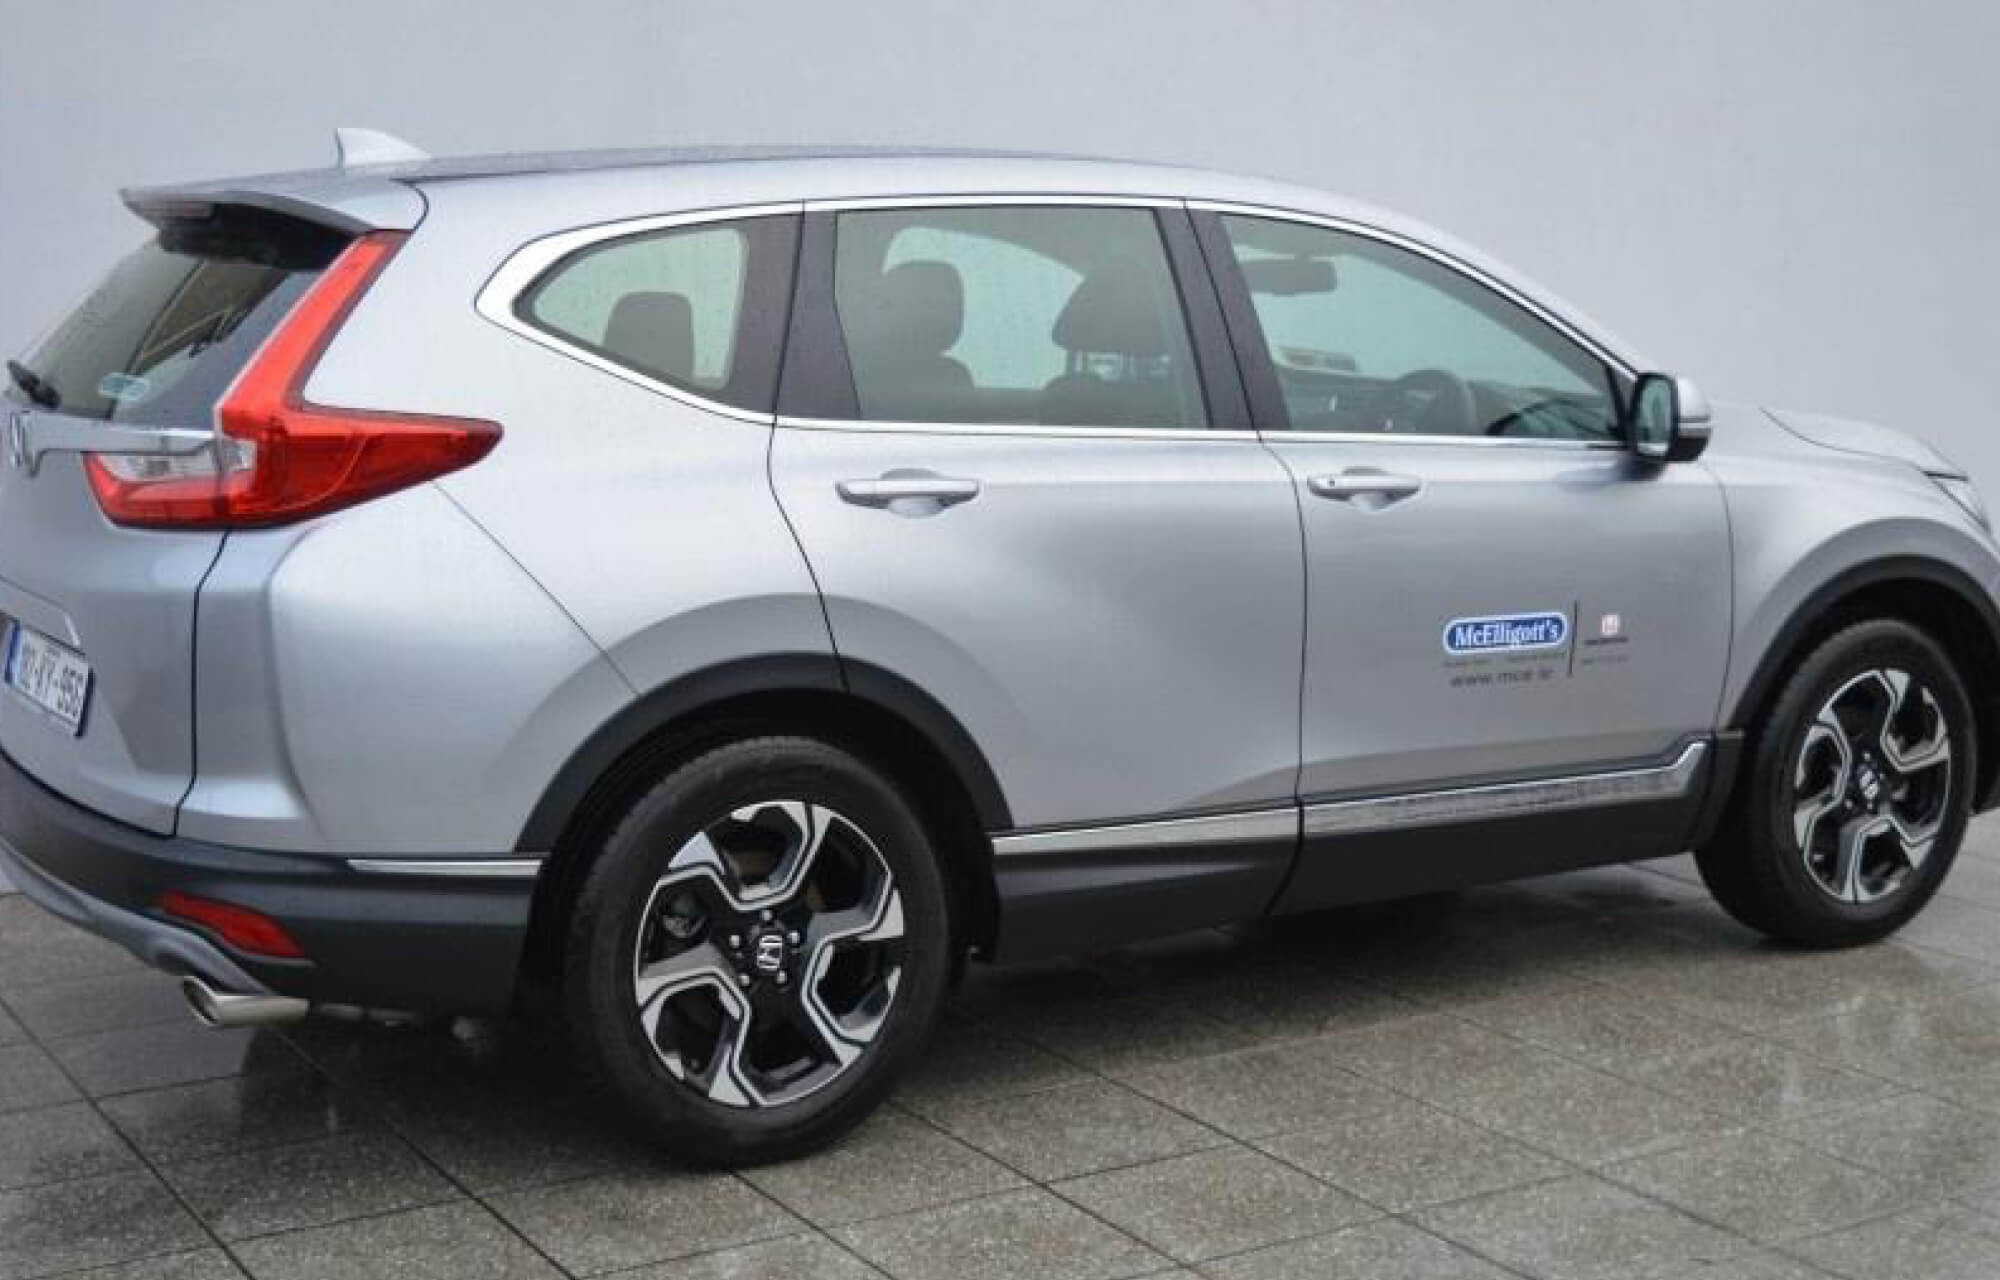 Ex-Demonstrator 2018 CR-V Lifestyle now available